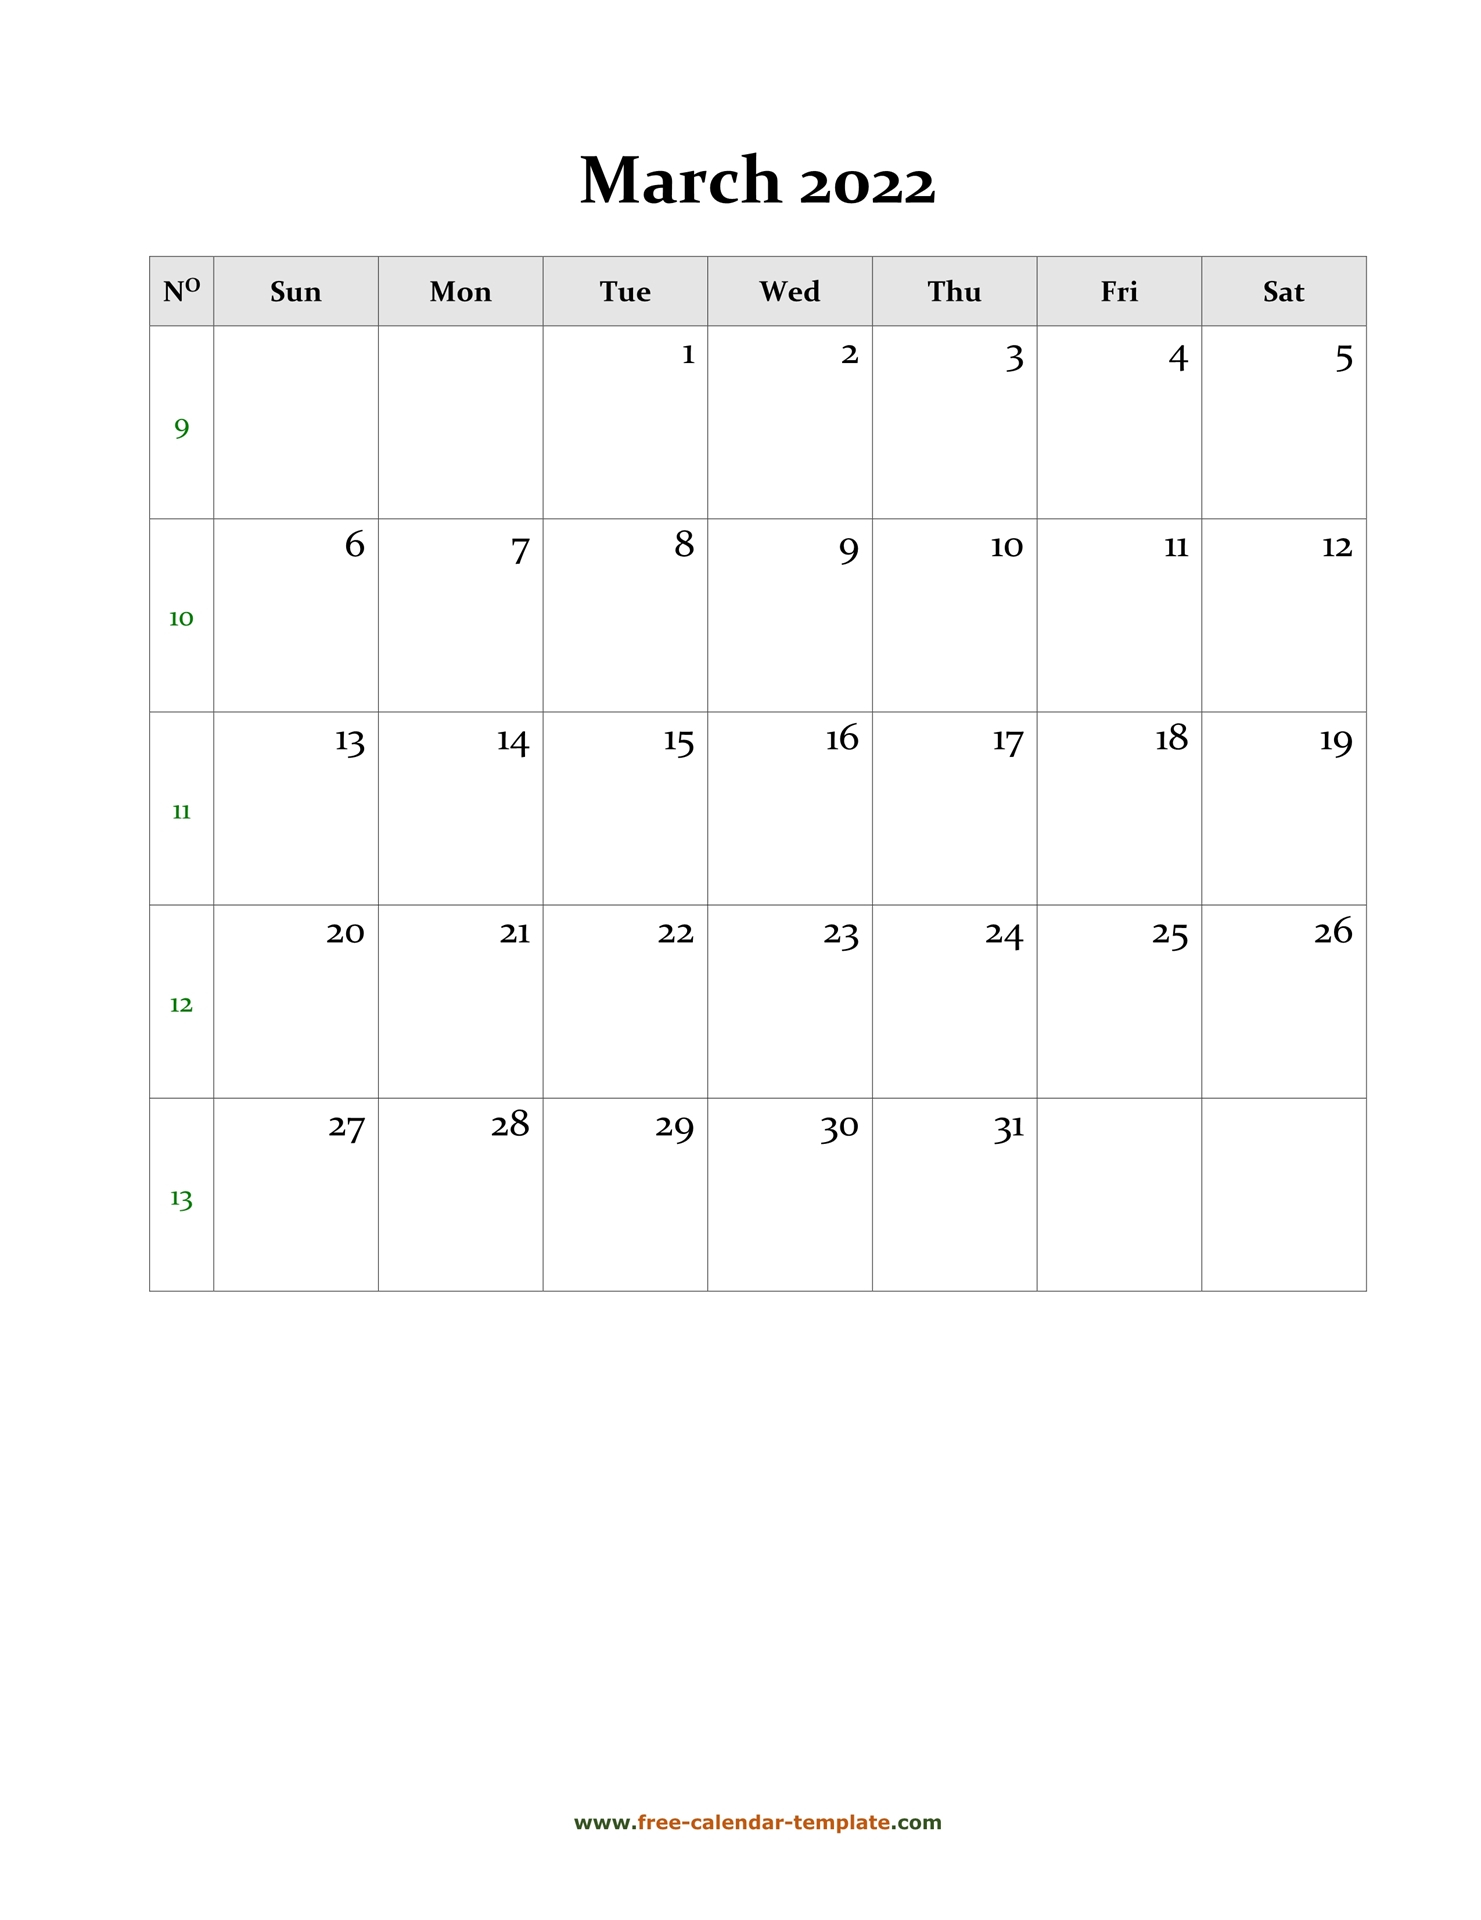 2022 March Calendar (Blank Vertical Template) | Free Throughout Caladar For The Mont Of March 2022